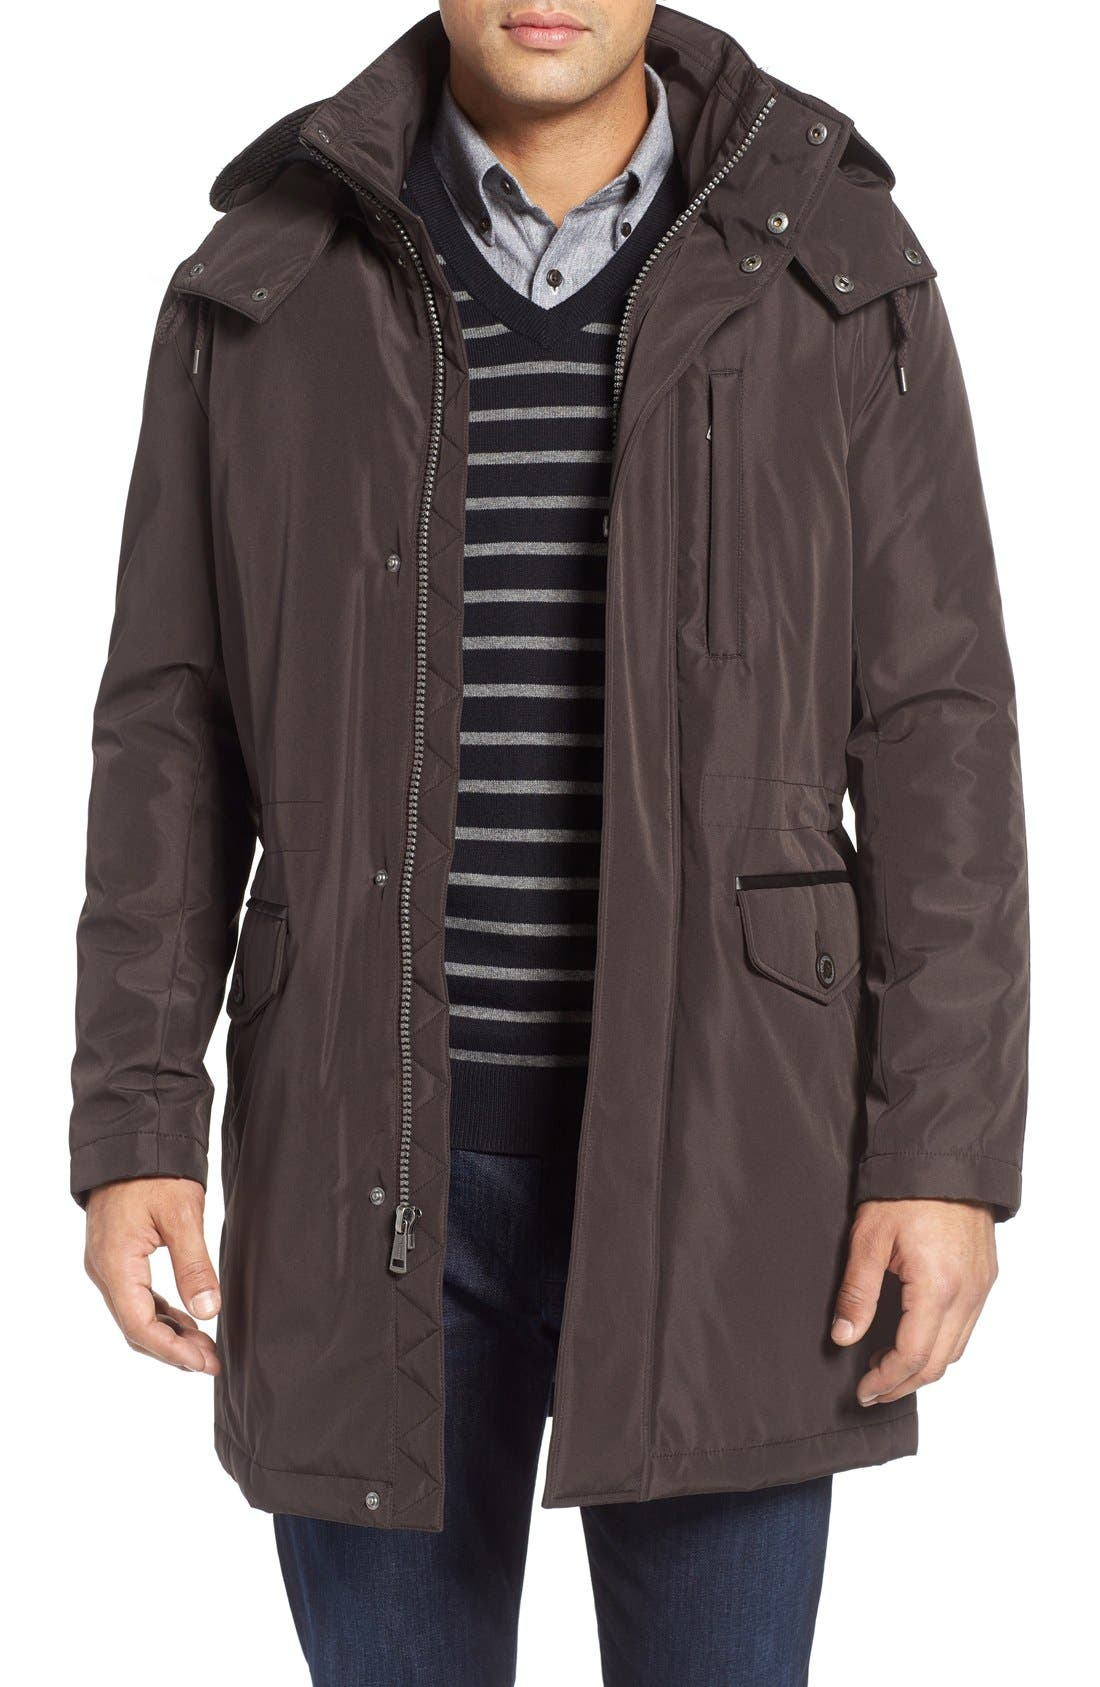 Insulated Water Resistant Car Coat,                         Main,                         color, Brown